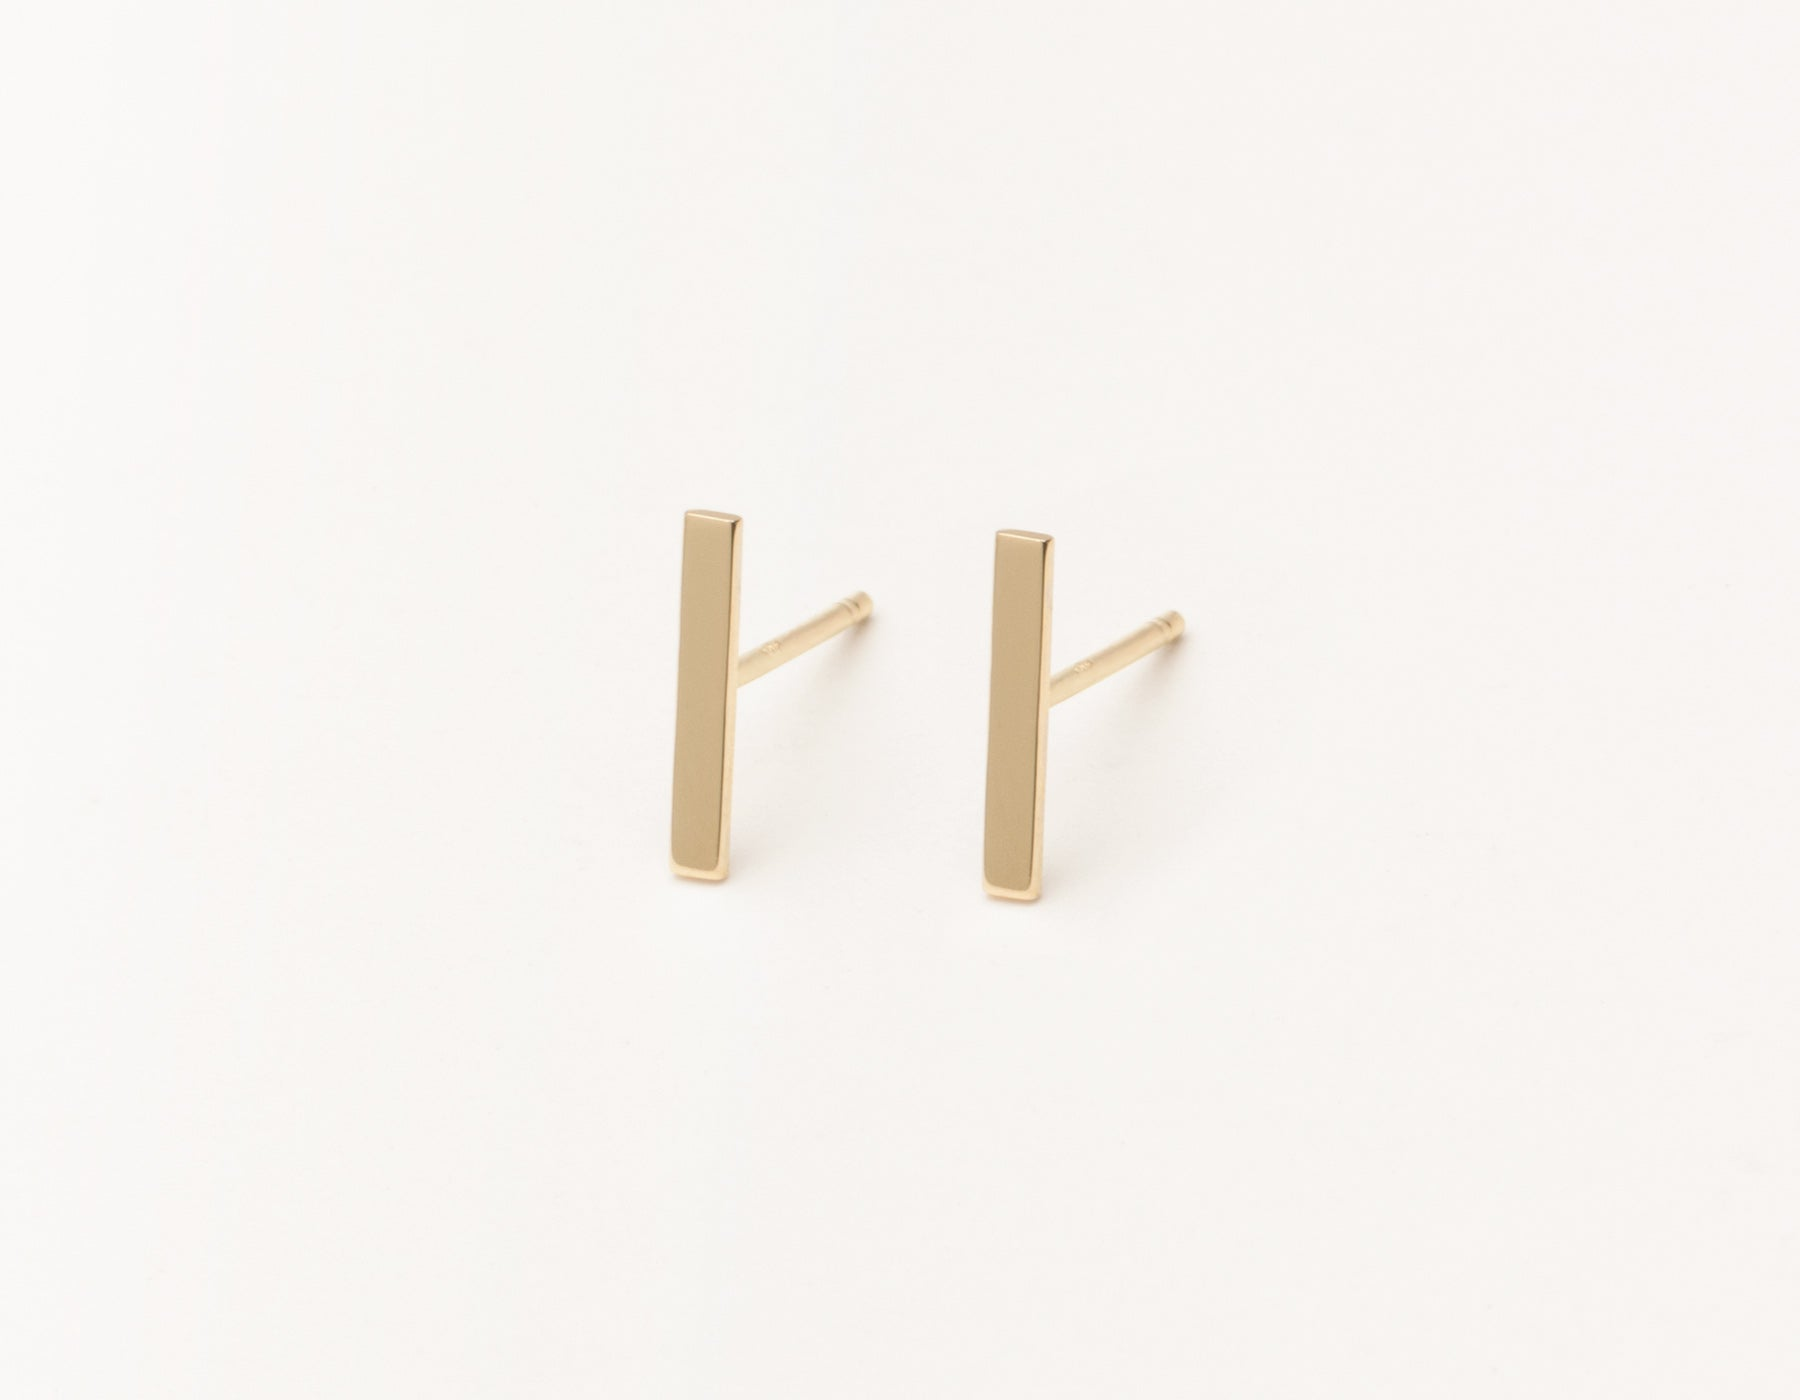 Modern minimalist Line Studs 14k solid gold post earrings Vrai and Oro, 14K Yellow Gold